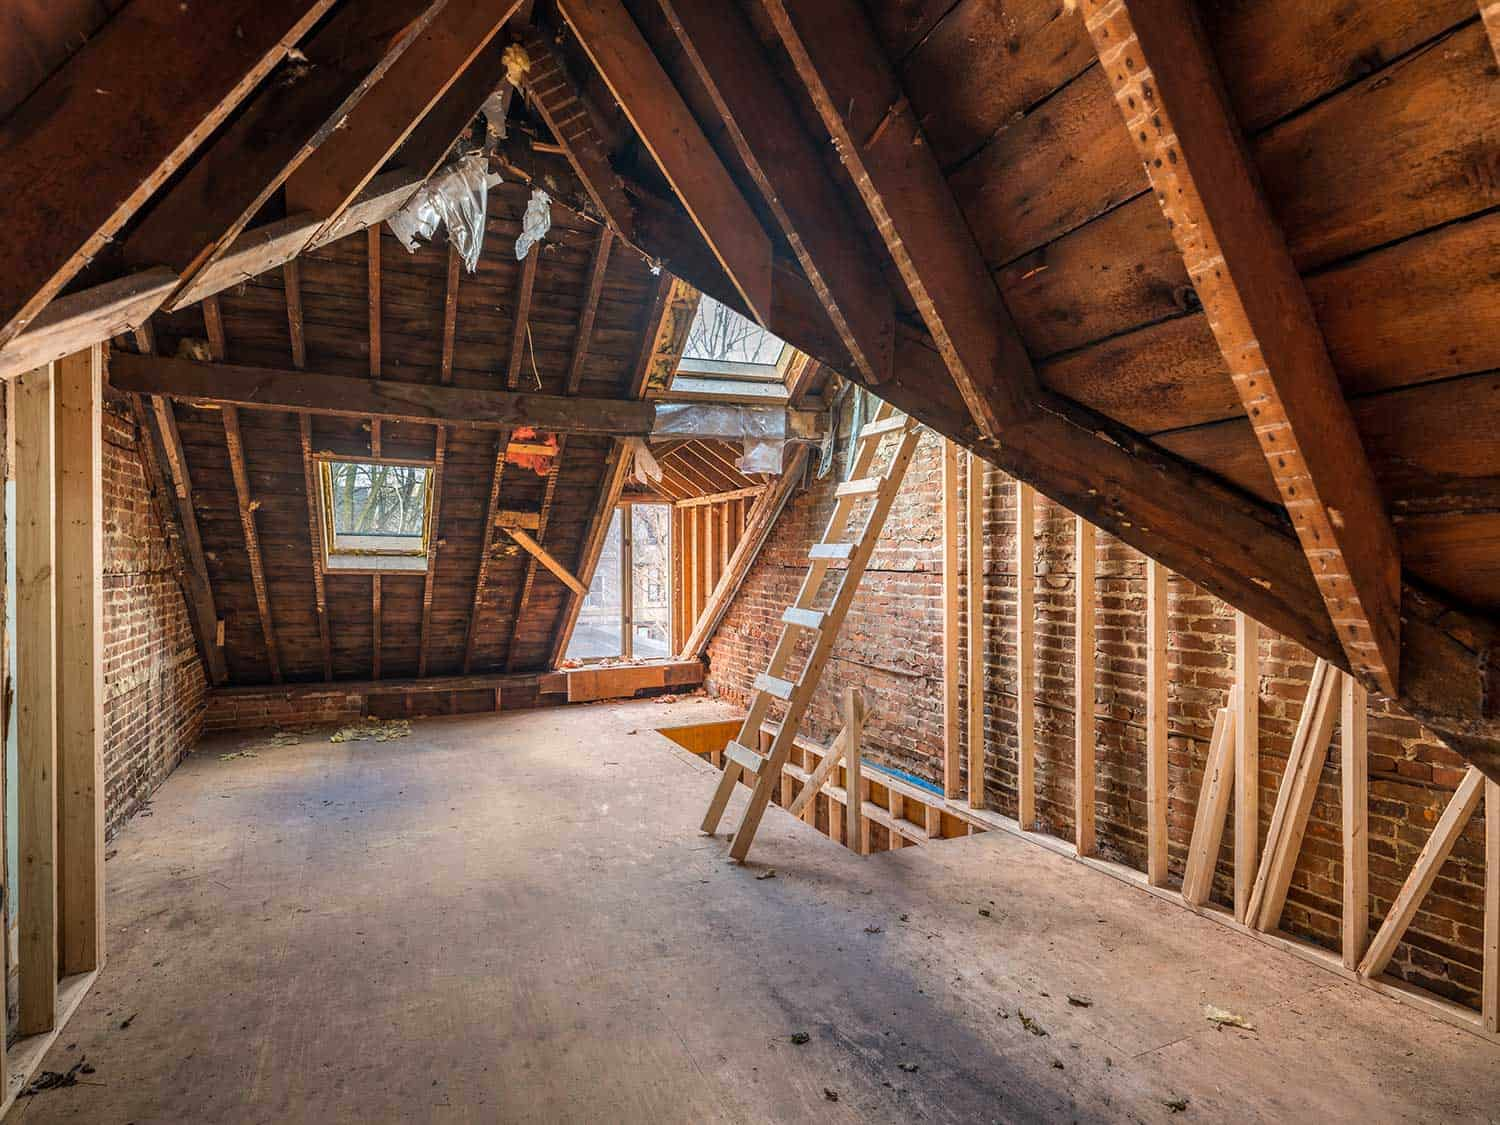 Interior of old Victorian style house under renovation, attic floor with exposed roof